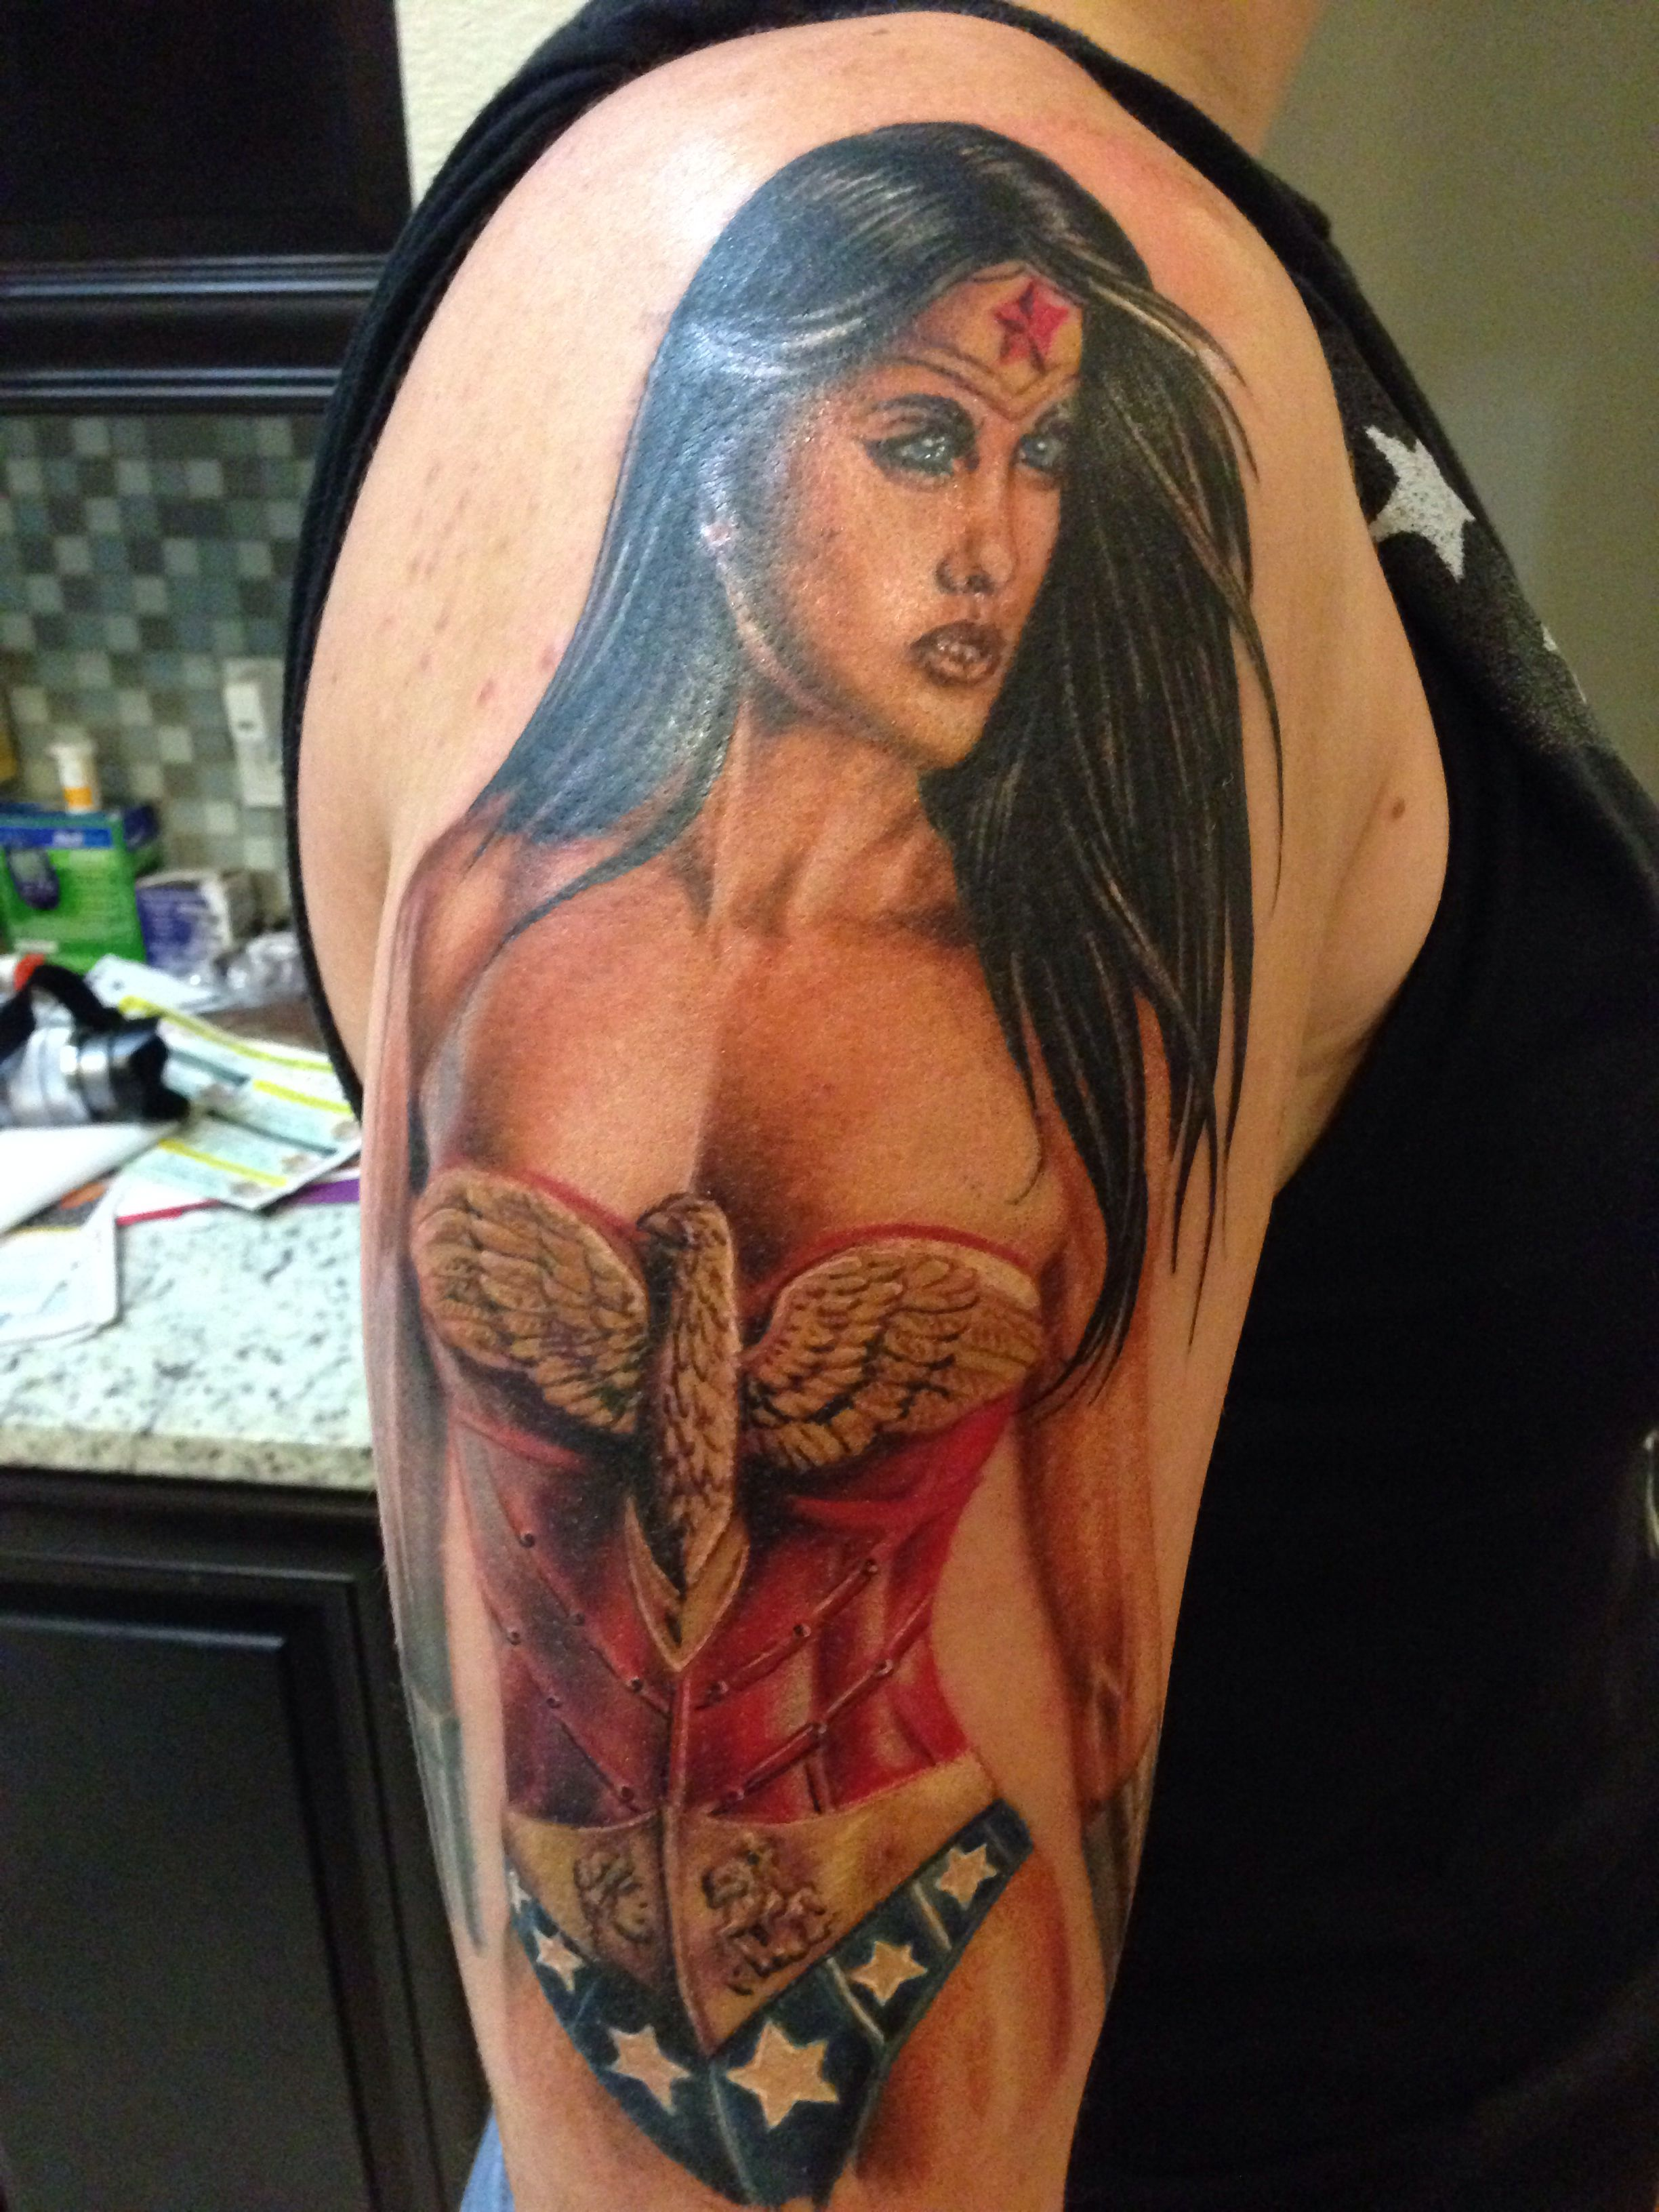 93021acb9 Wonder Woman justice league tattoo start of half sleeve done by mike the  freak at scooters with eternal ink. Love my new tatt!!!